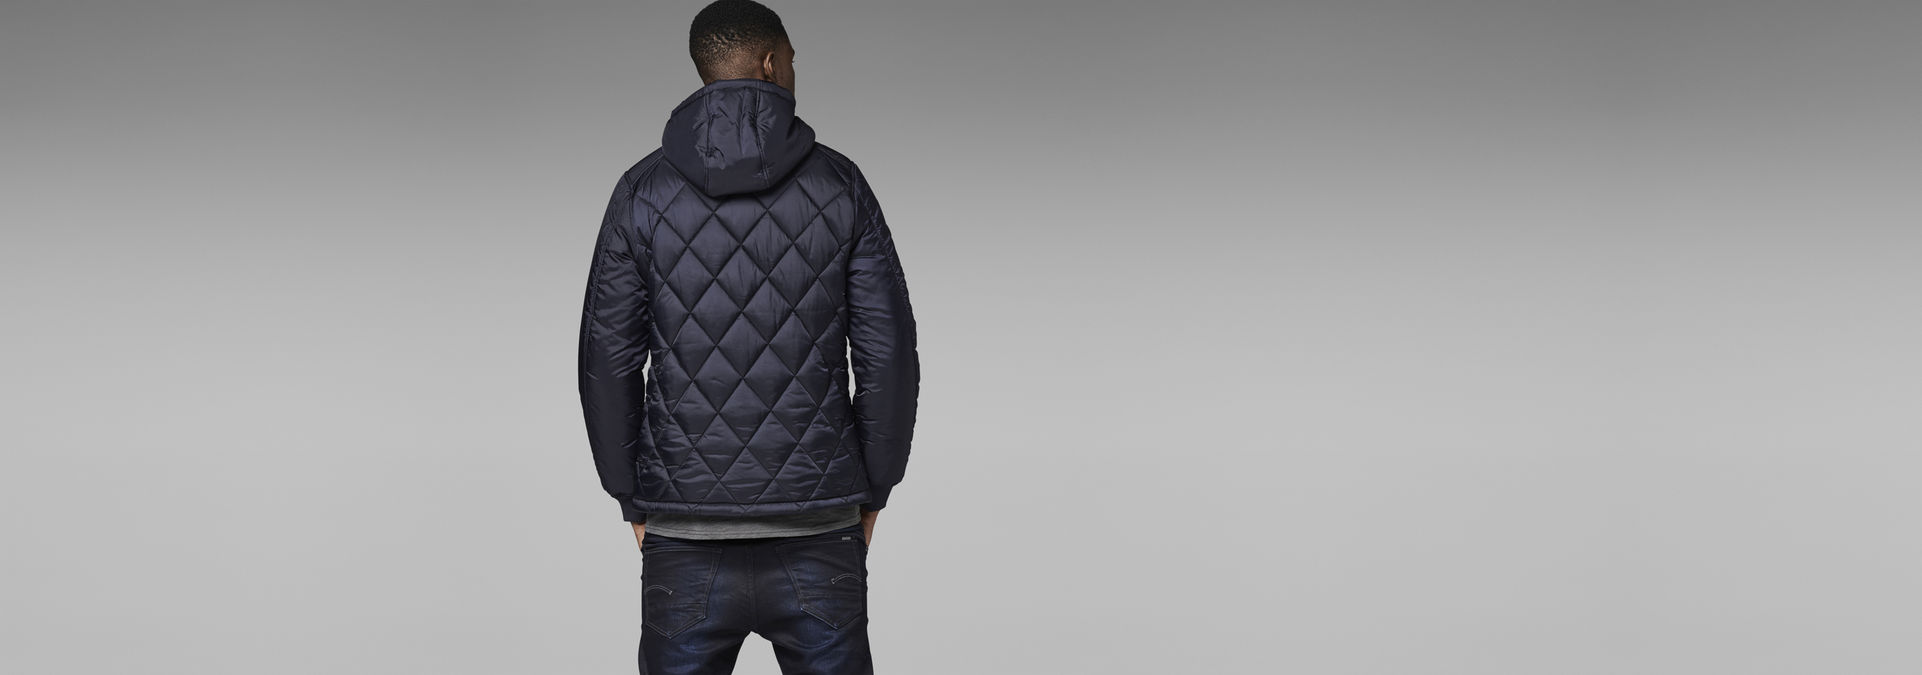 0a7bc1740e5 ... G-Star RAW® FIBRICK HOODED JACKET Dark blue model back ...